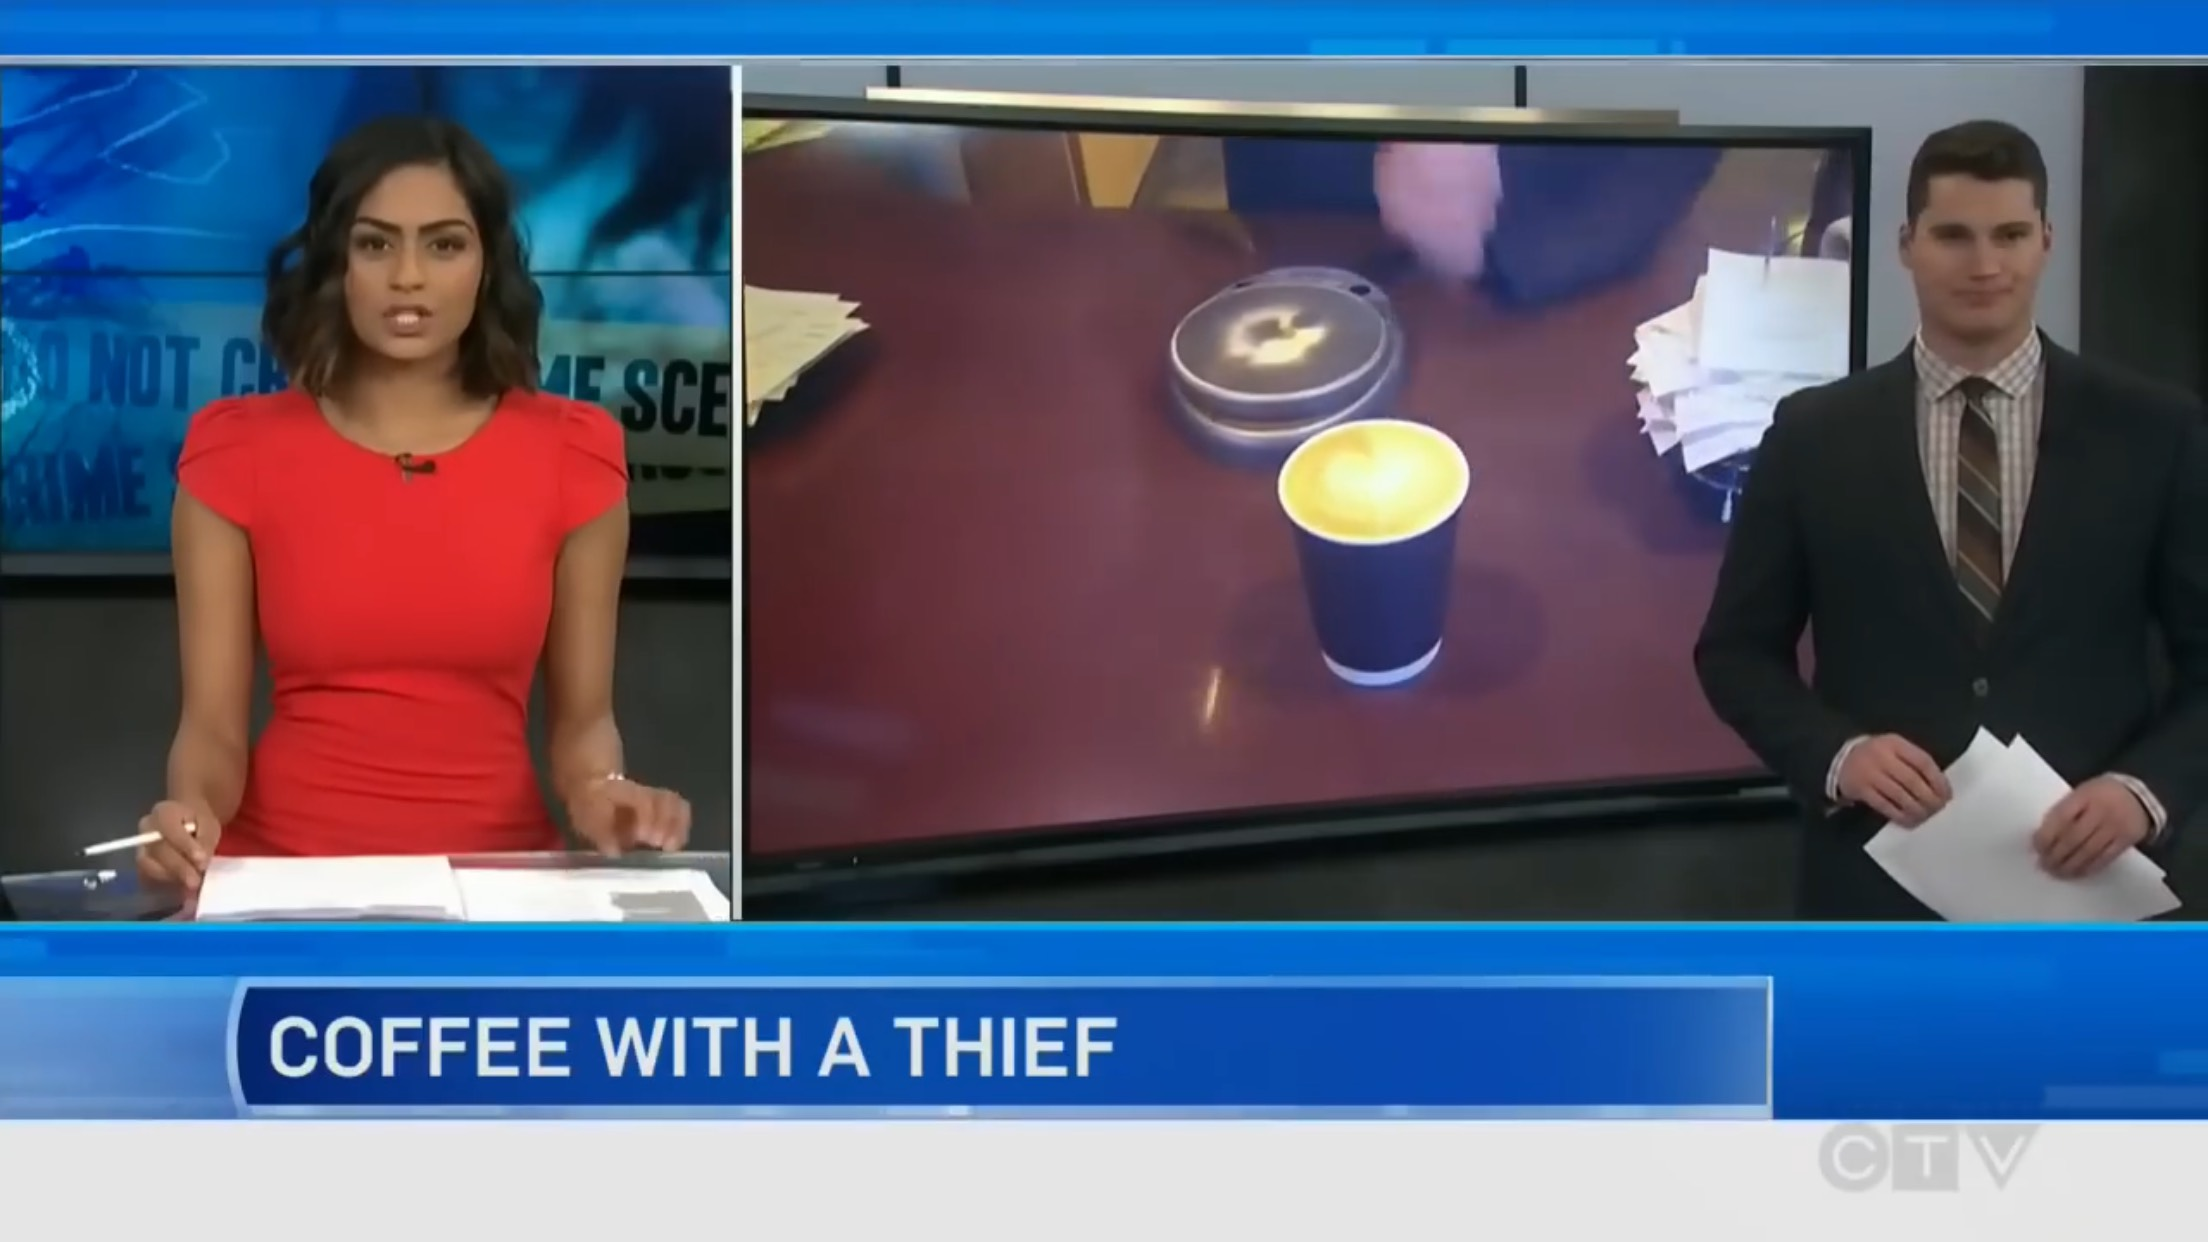 Coffee With A Thief